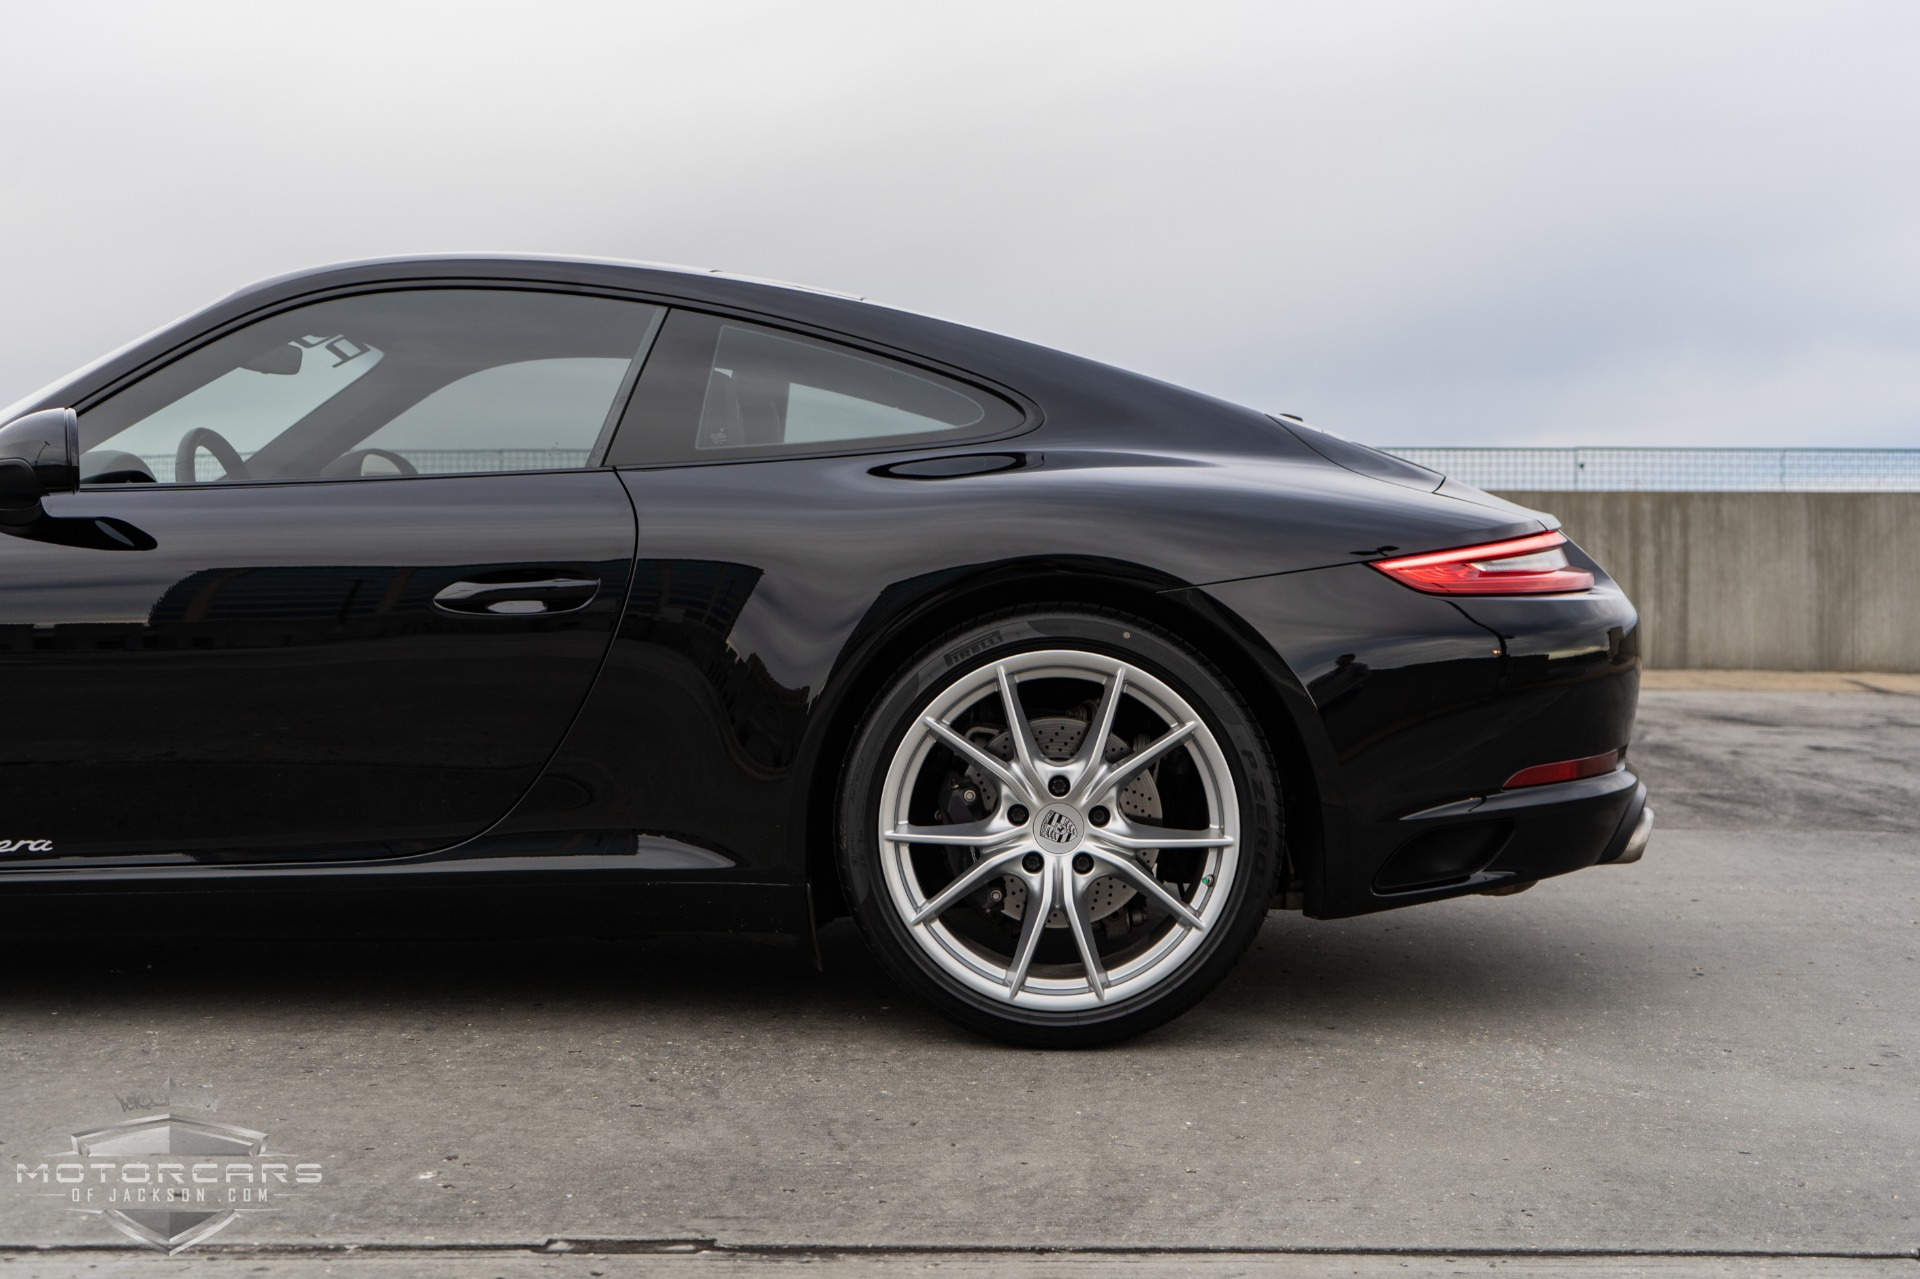 Used-2018-Porsche-911-Carrera-for-sale-Jackson-MS